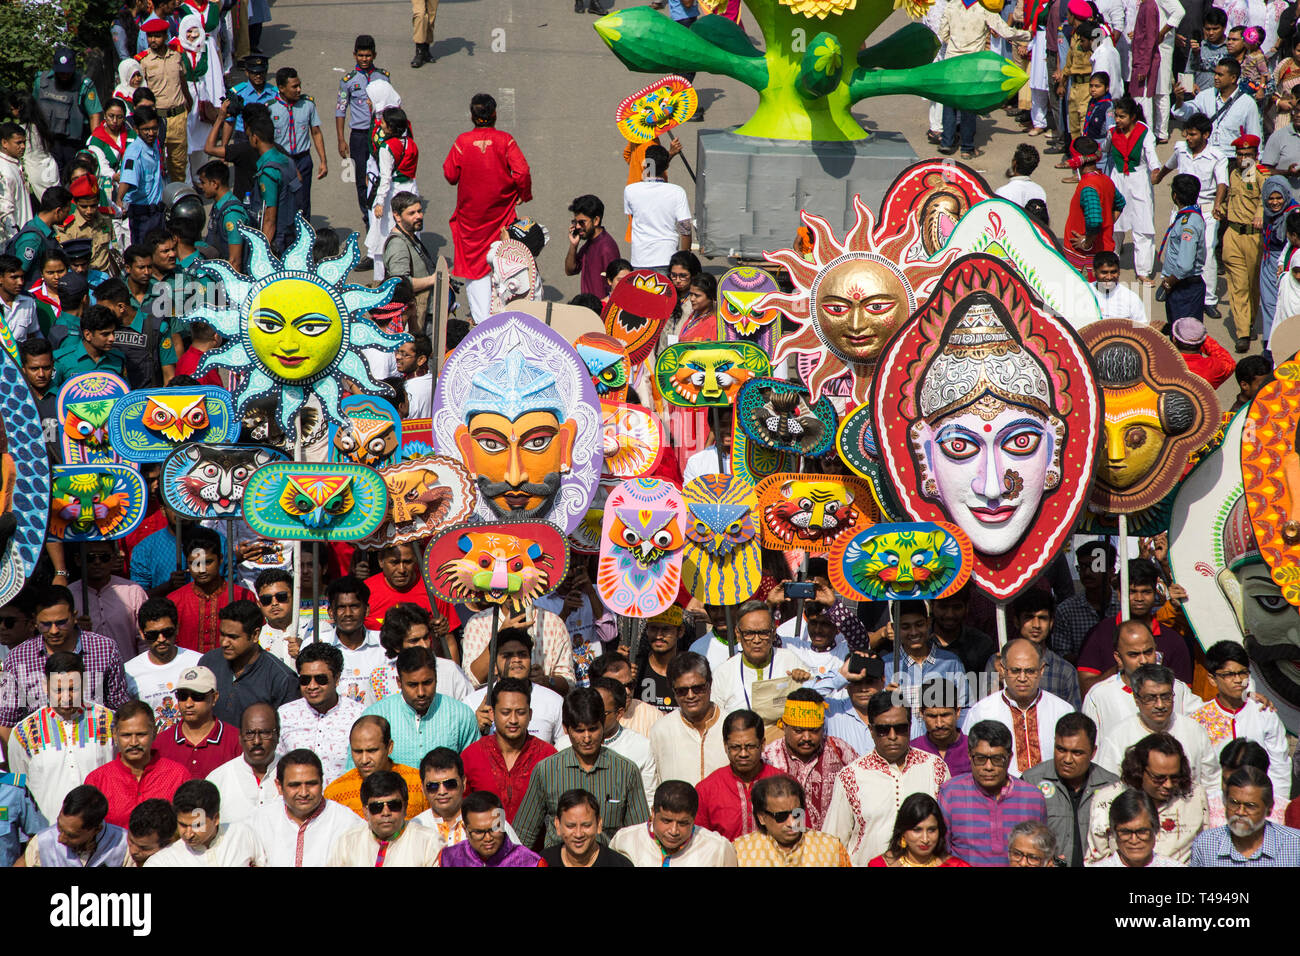 Image result for Mangal Shobhajatra on Pahela Baishakh